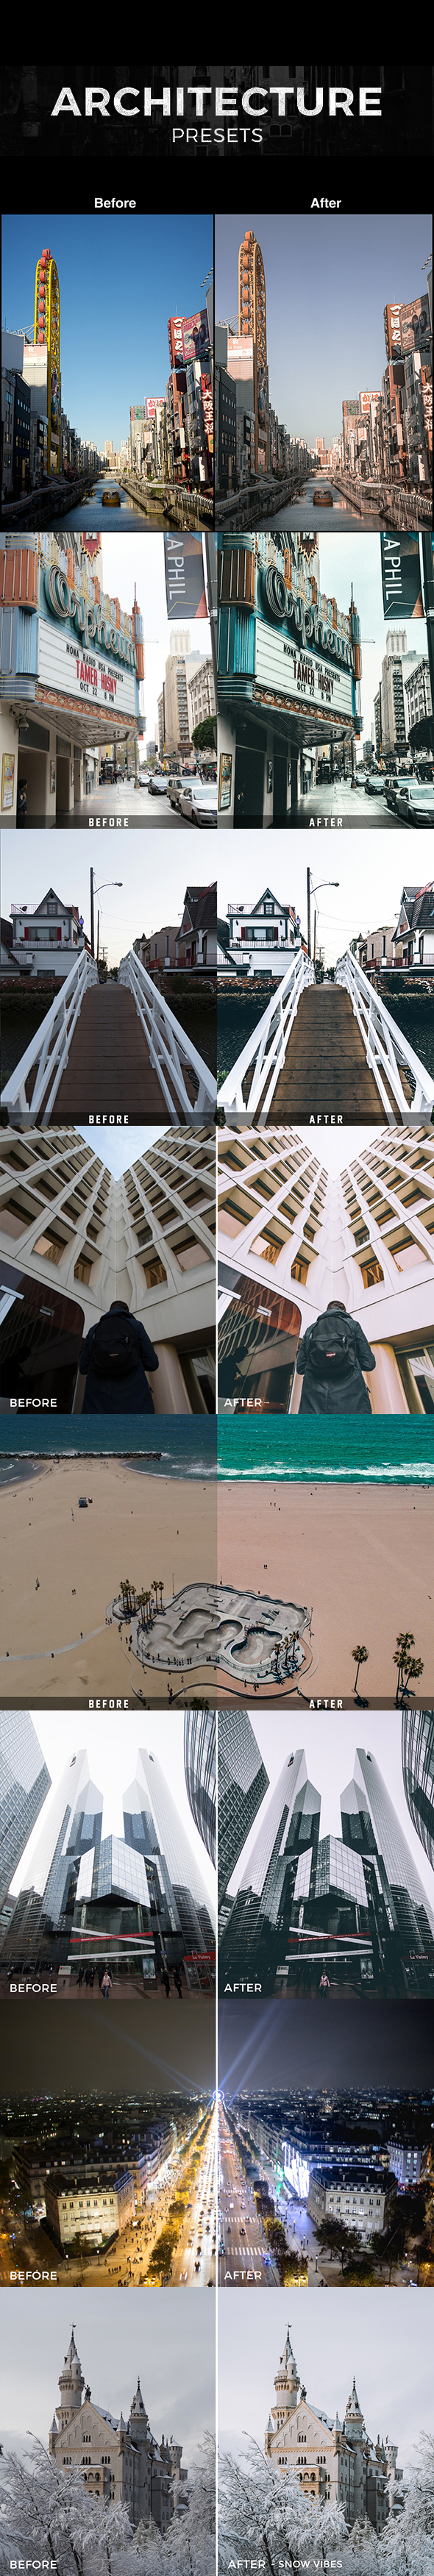 Professional Architecture Presets - Lightroom Presets Add-ons